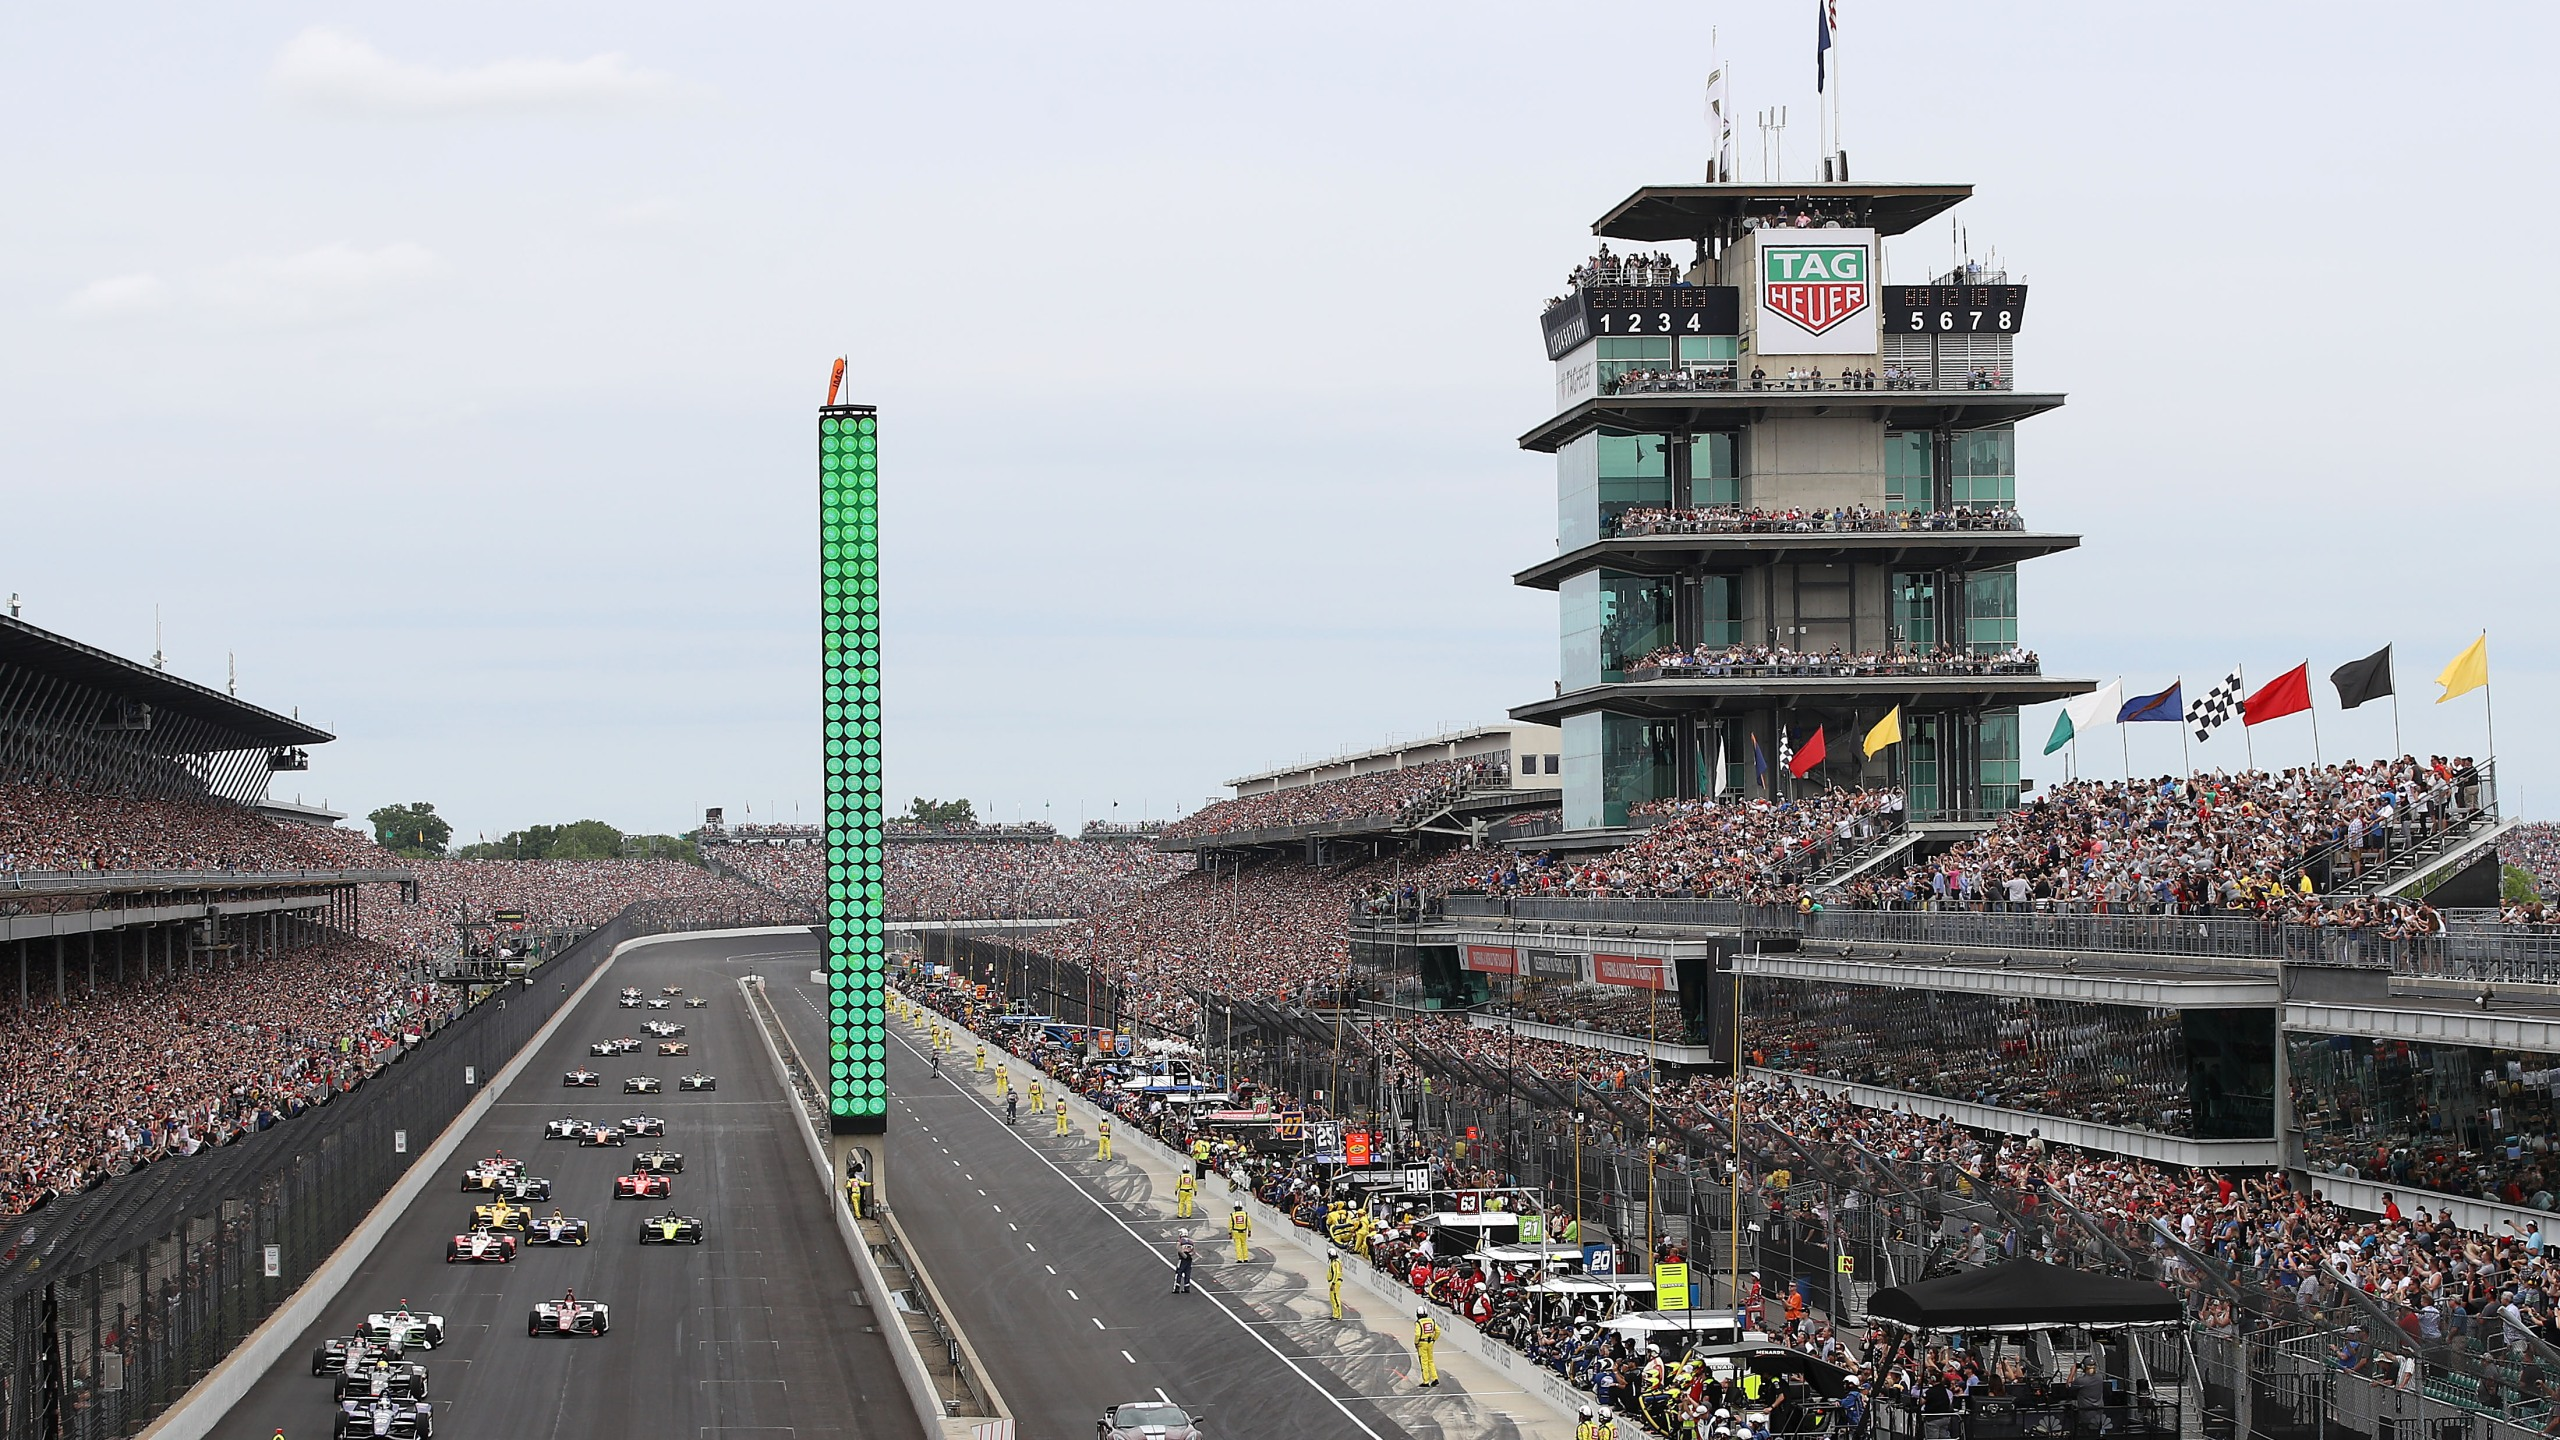 Indianapolis Motor Speedway for the Indy 500